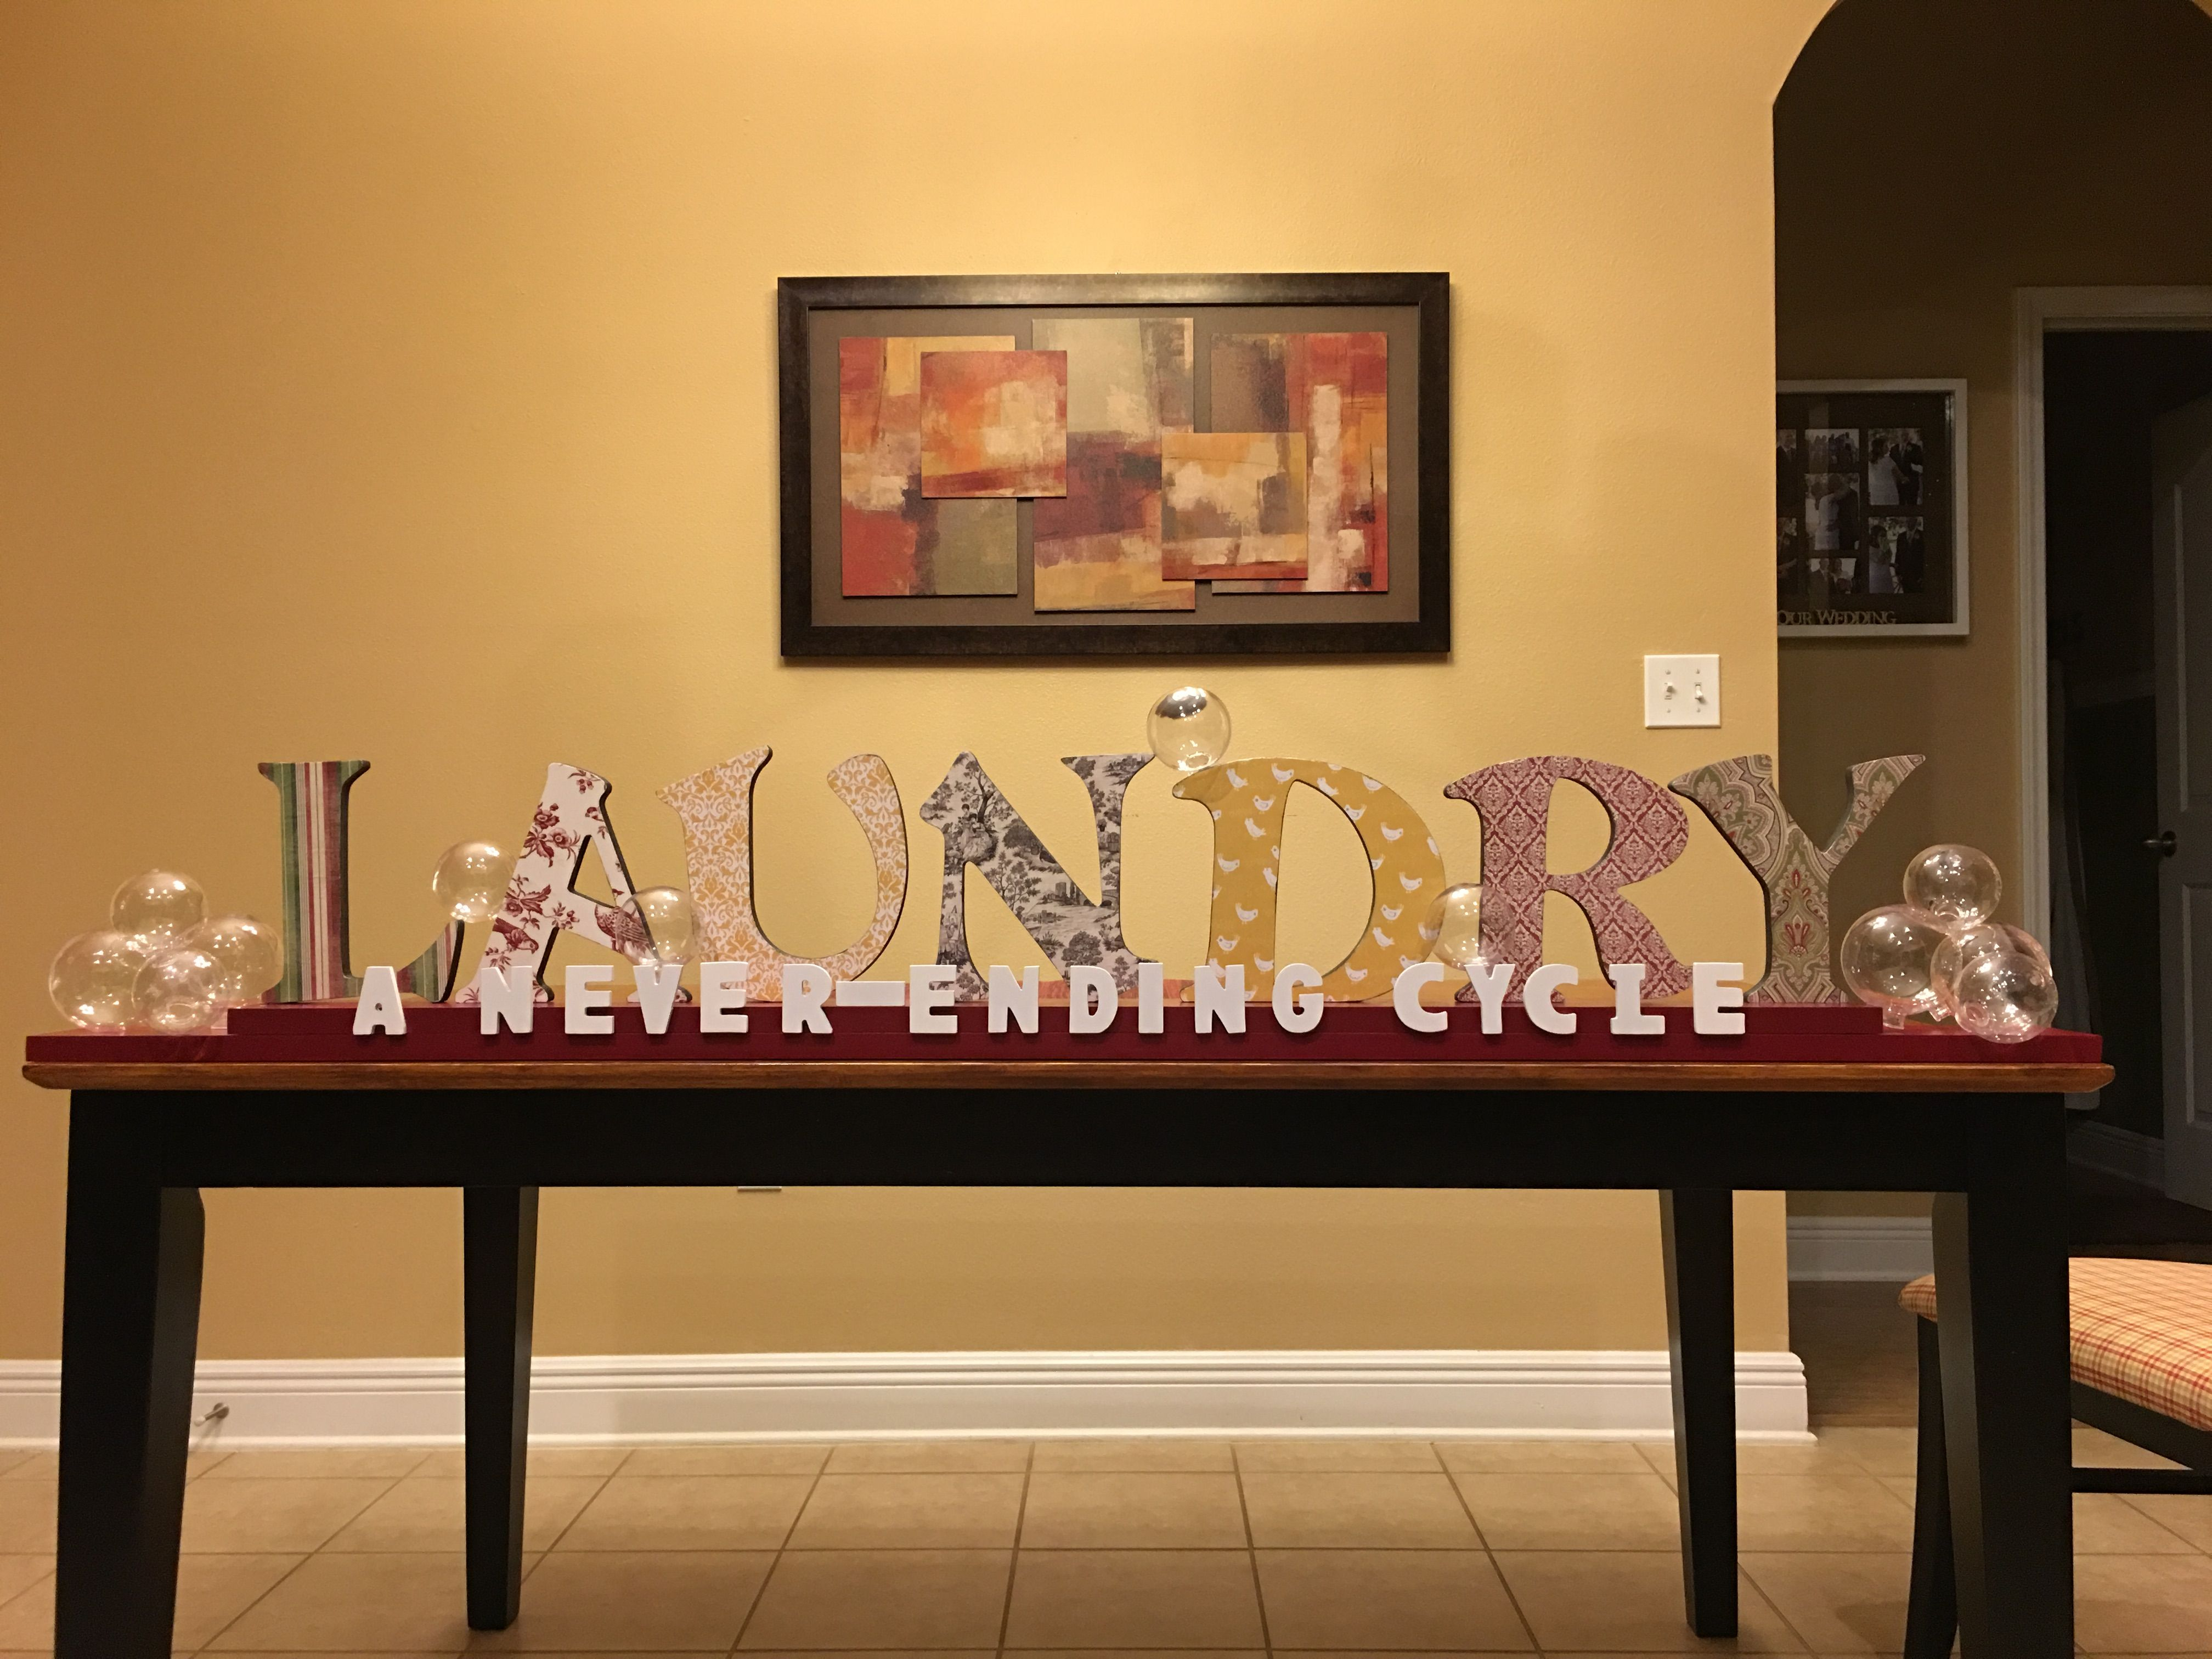 How to glue scrapbook paper to wood letters - Laundry Room Decor Diy Laundry Room Sign Made With Wood Letters From Joanne S Used